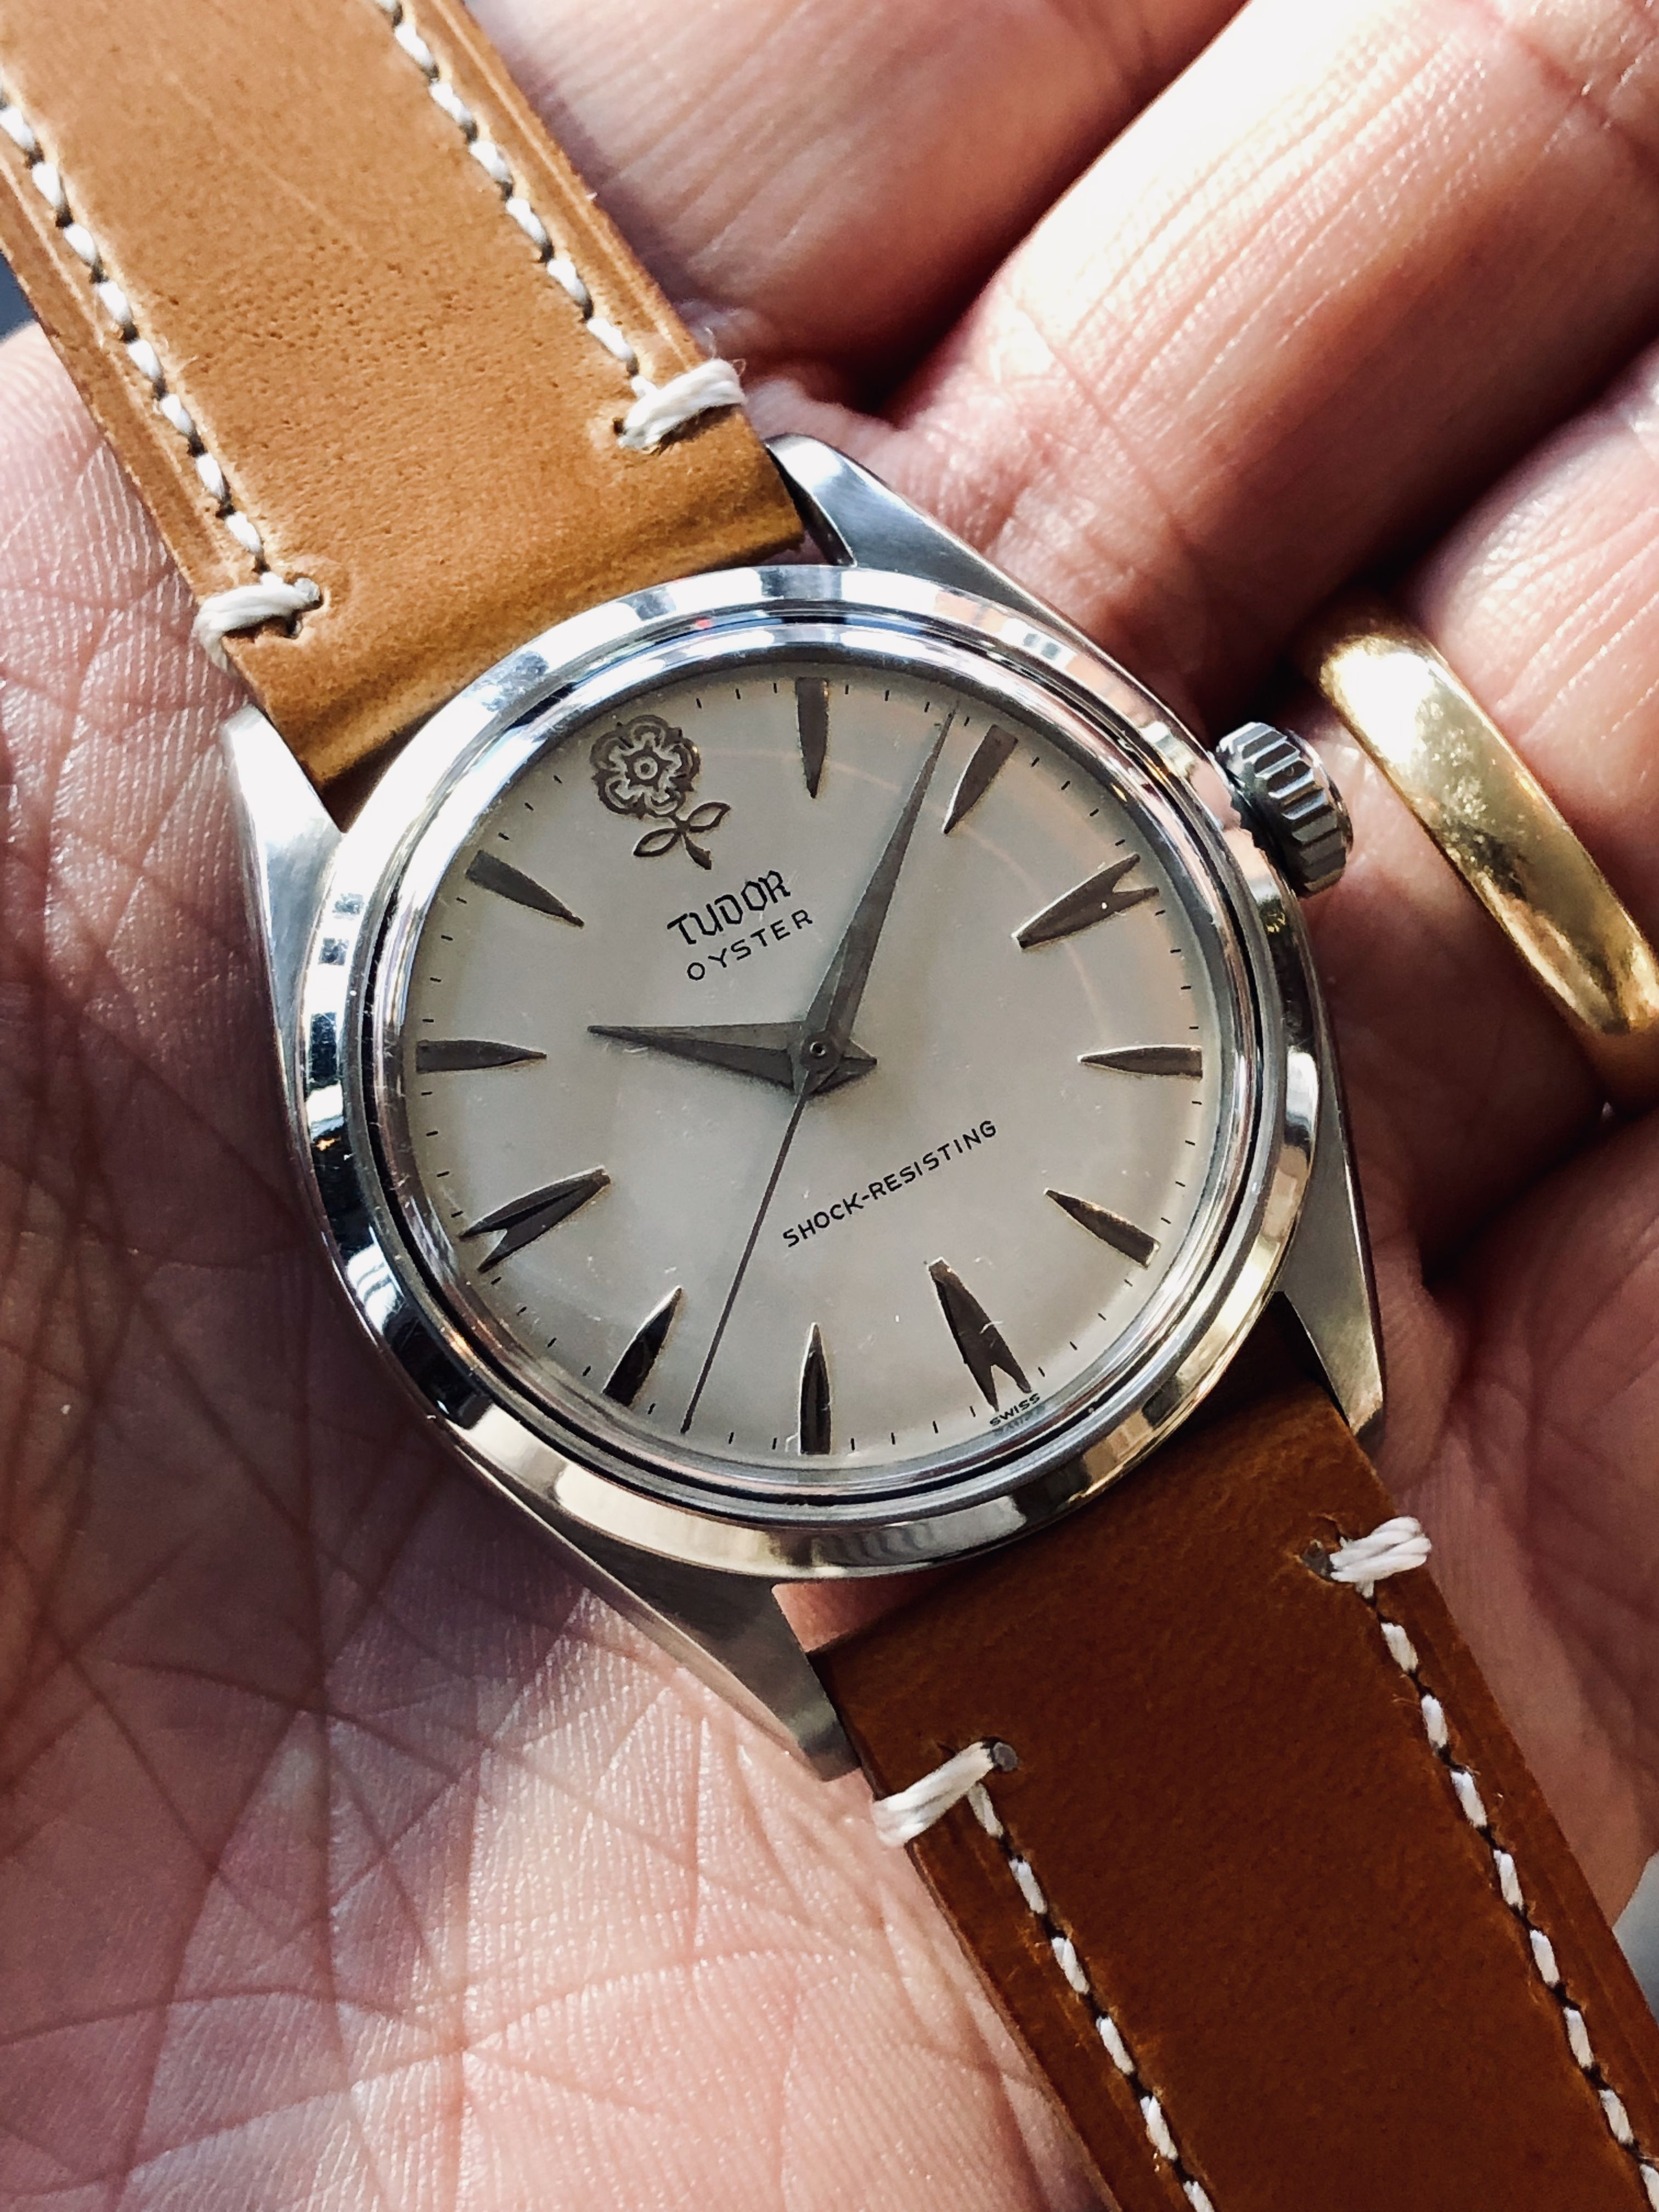 Tudor Big Rose Ref 7934 Mechanical vintage men's watch  #vintagewatches